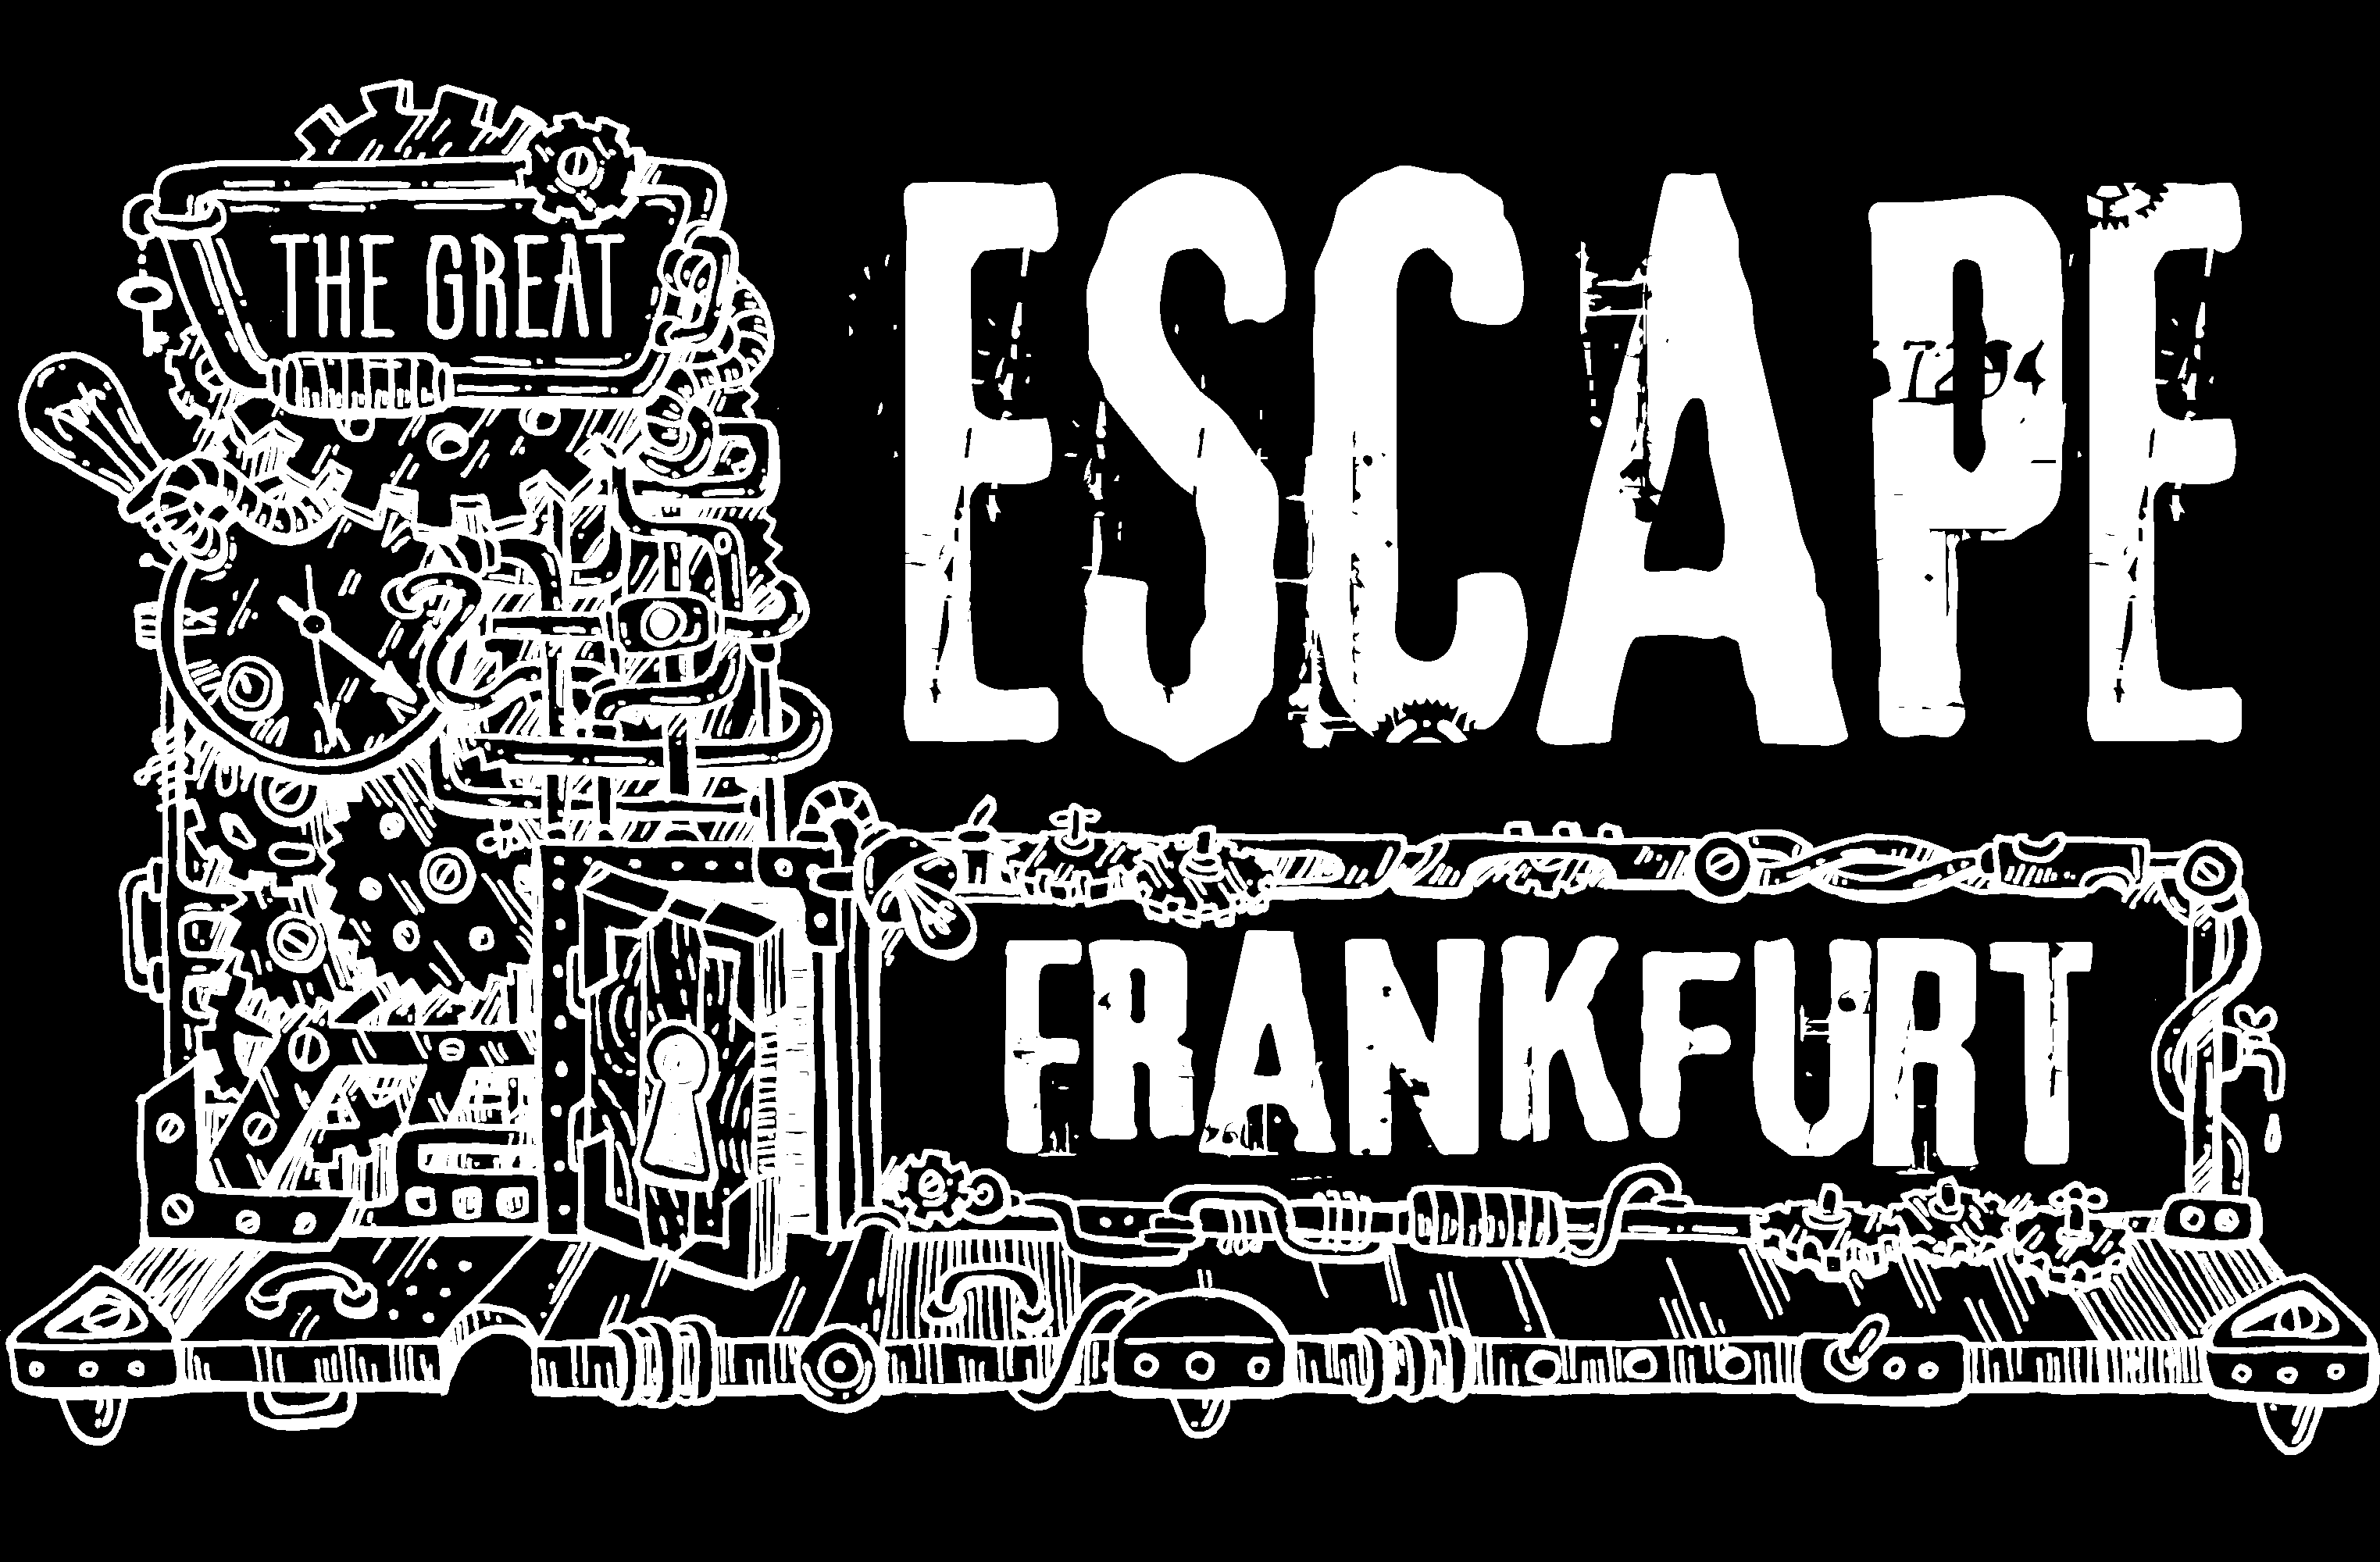 The Great Escape Frankfurt